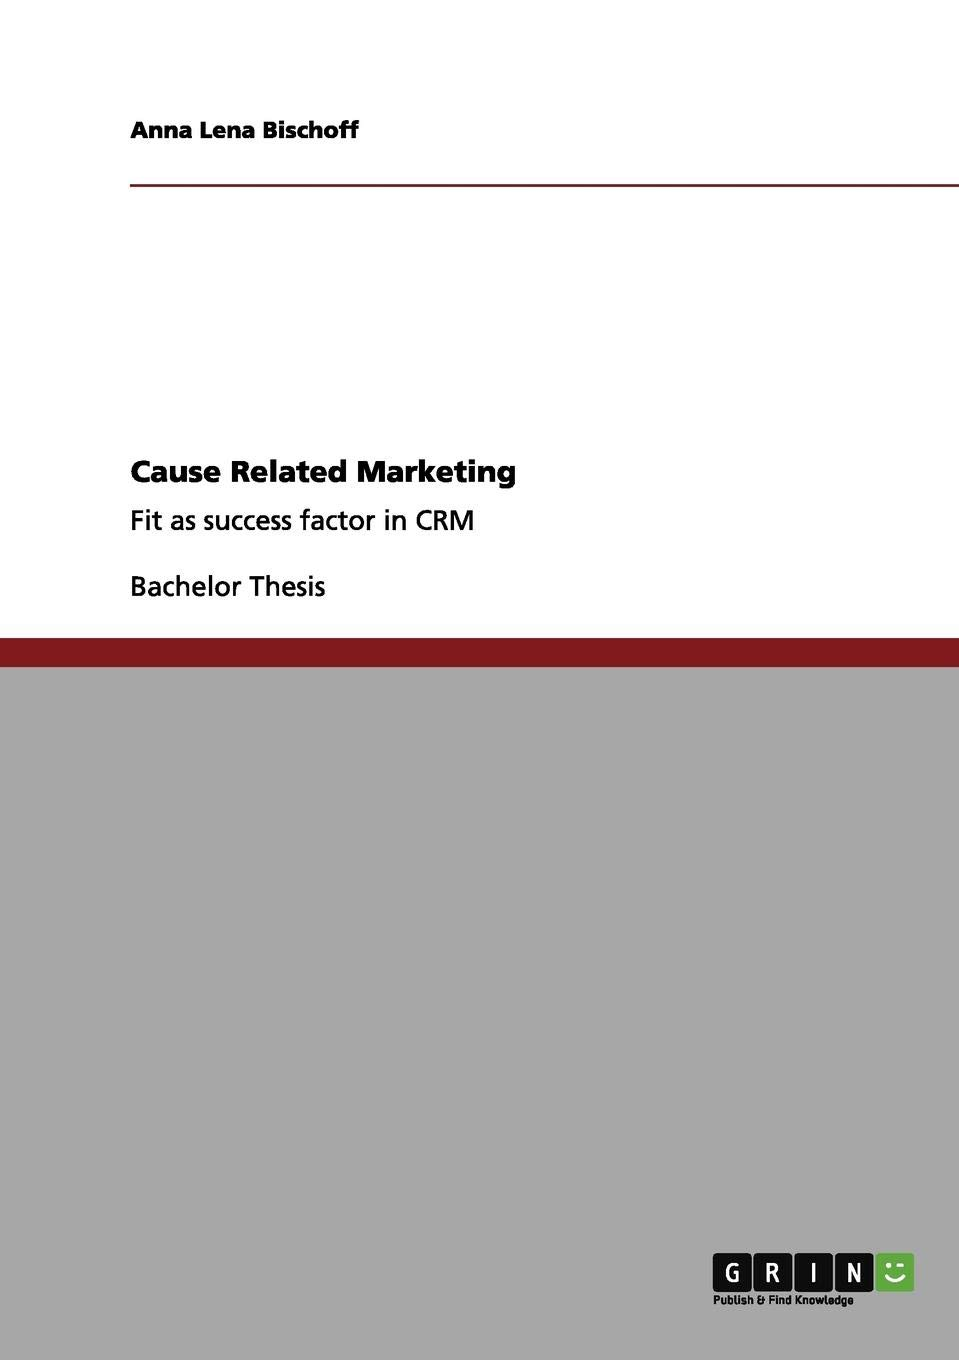 Research Proposal: Customer Relationship Management